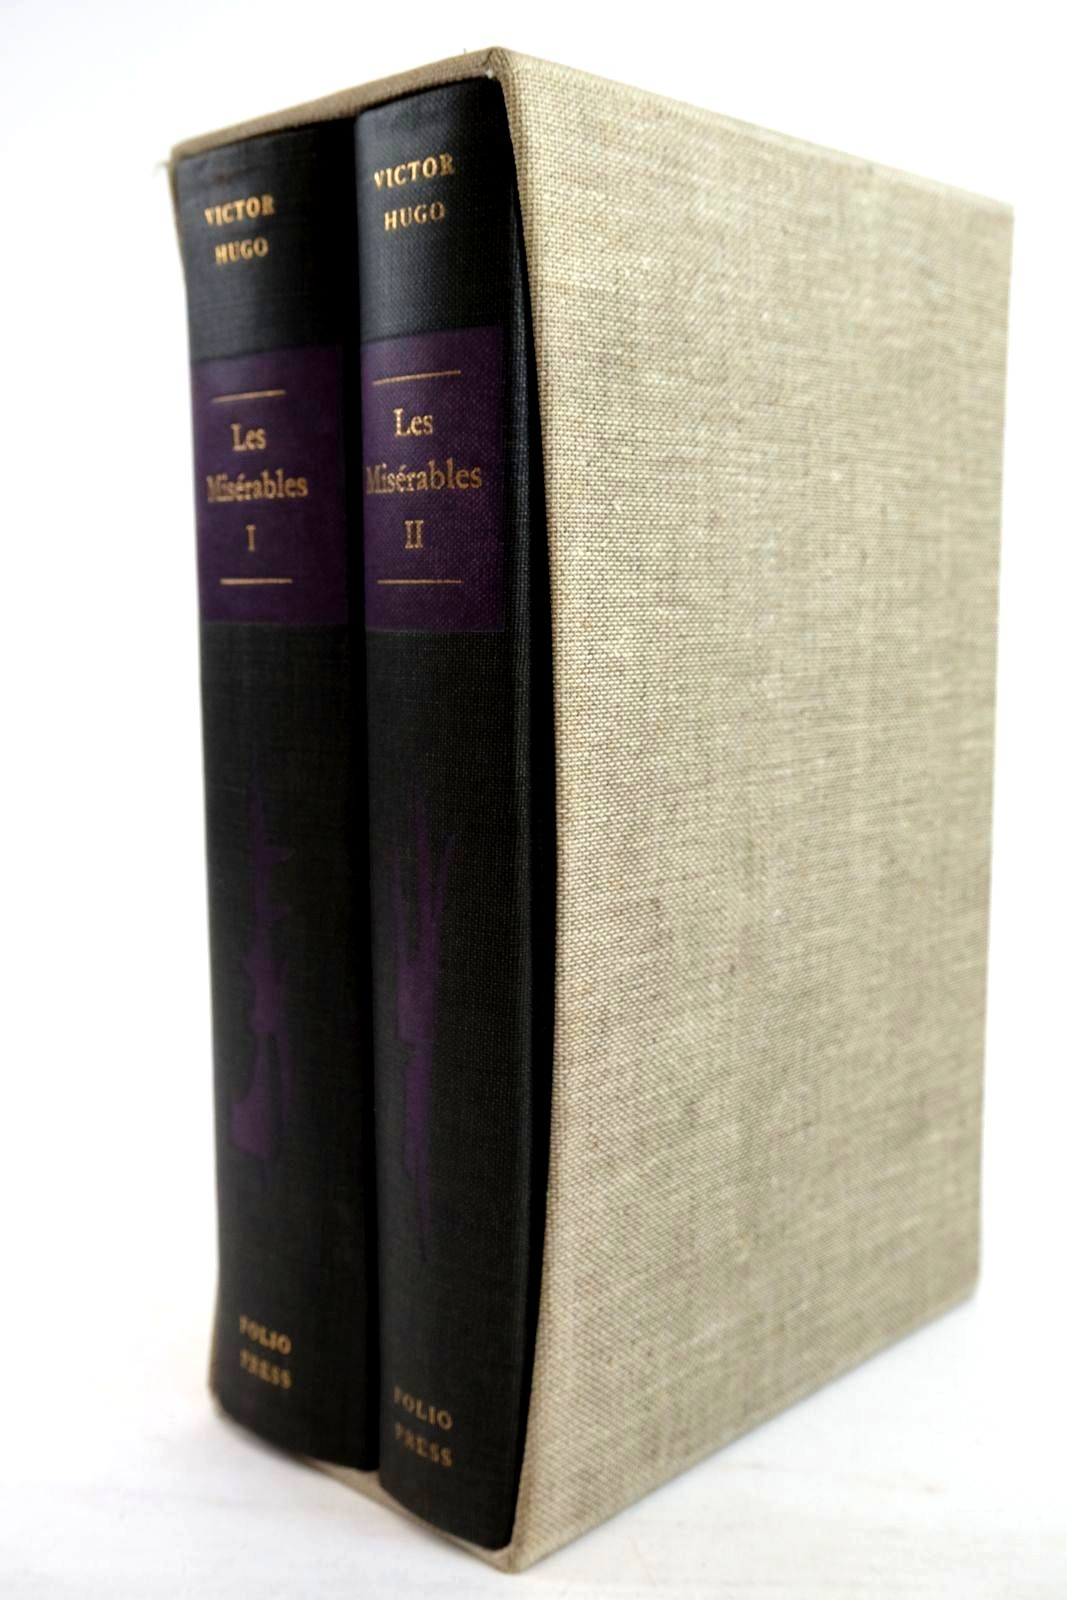 Photo of LES MISERABLES (2 VOLUMES) written by Hugo, Victor Denny, Norman illustrated by Keeping, Charles published by Folio Press (STOCK CODE: 1320252)  for sale by Stella & Rose's Books